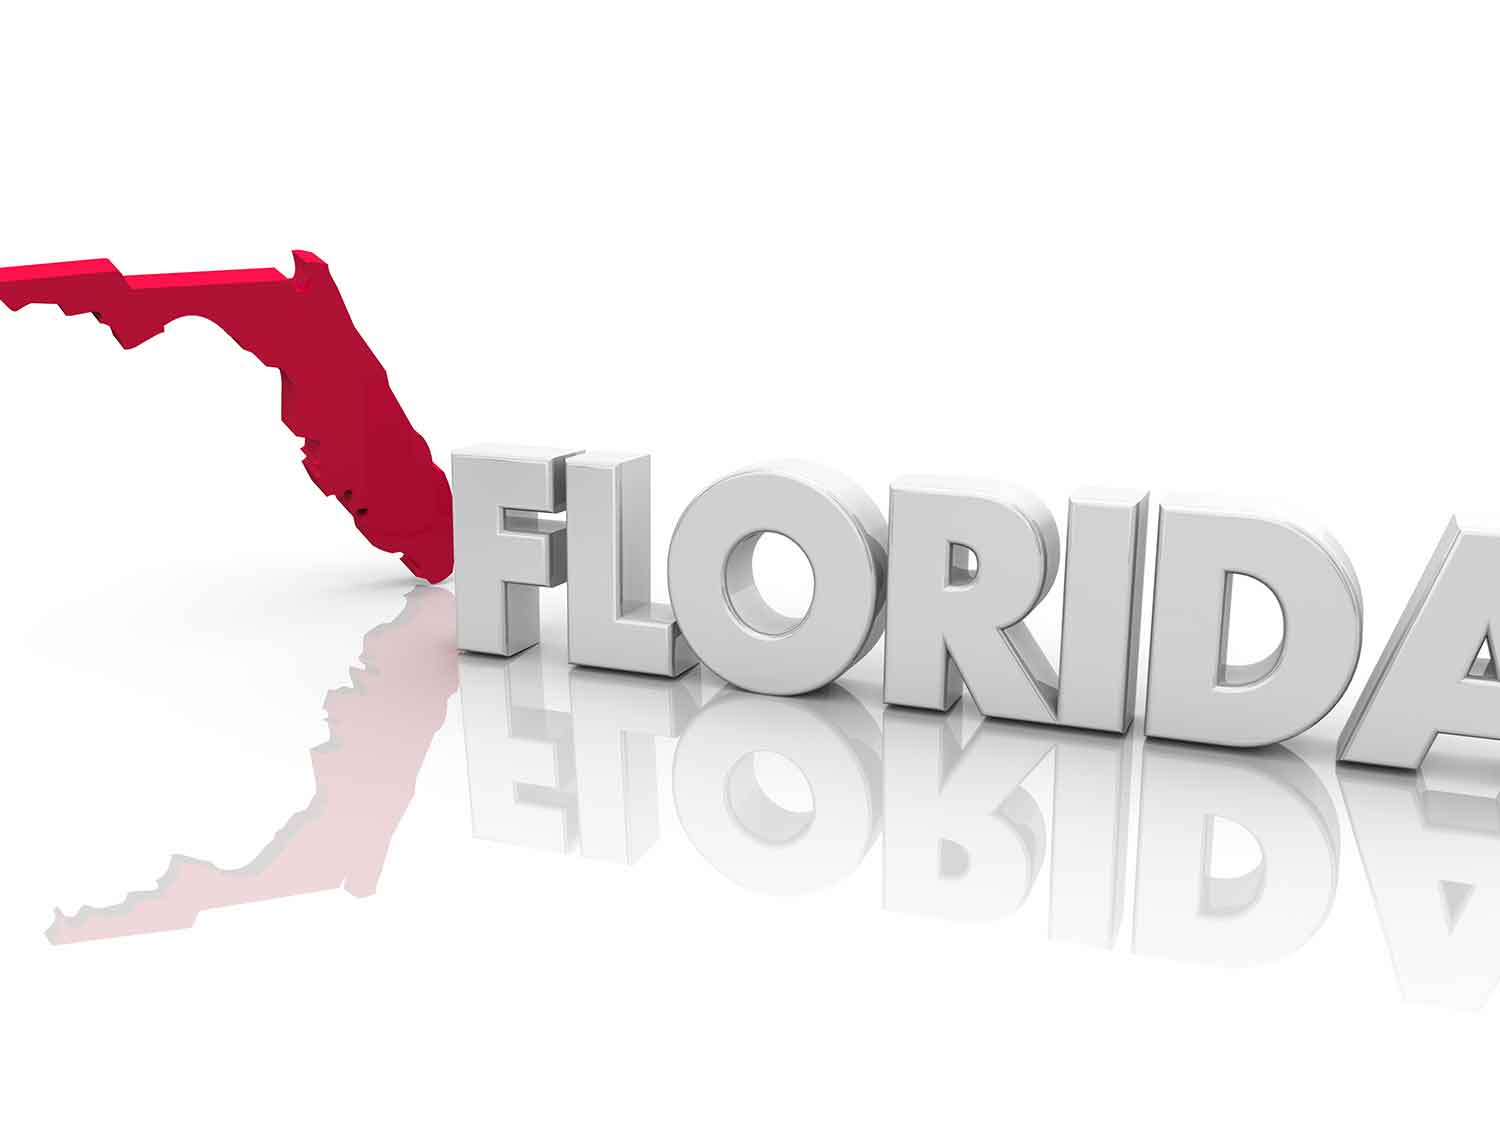 Florida Graphic For Medical Malpractice Insurance